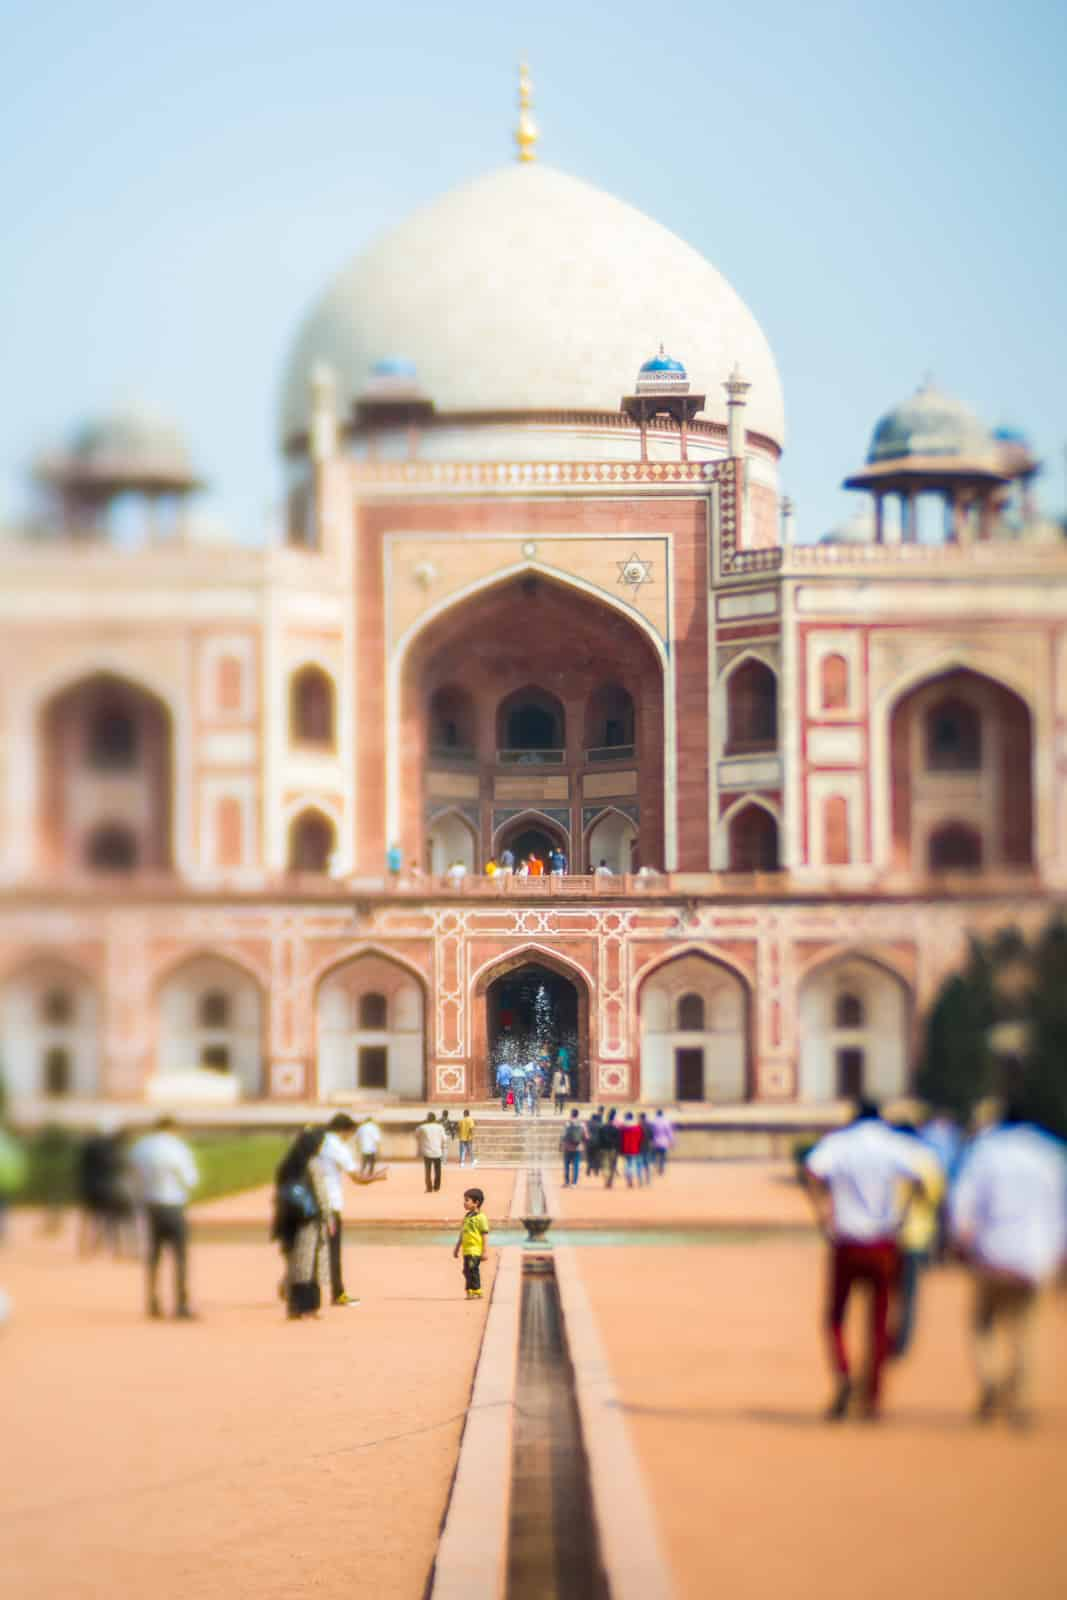 Tourists at Humayun's Tomb in Delhi, India shot with a Lensbaby Edge 50 Optic.